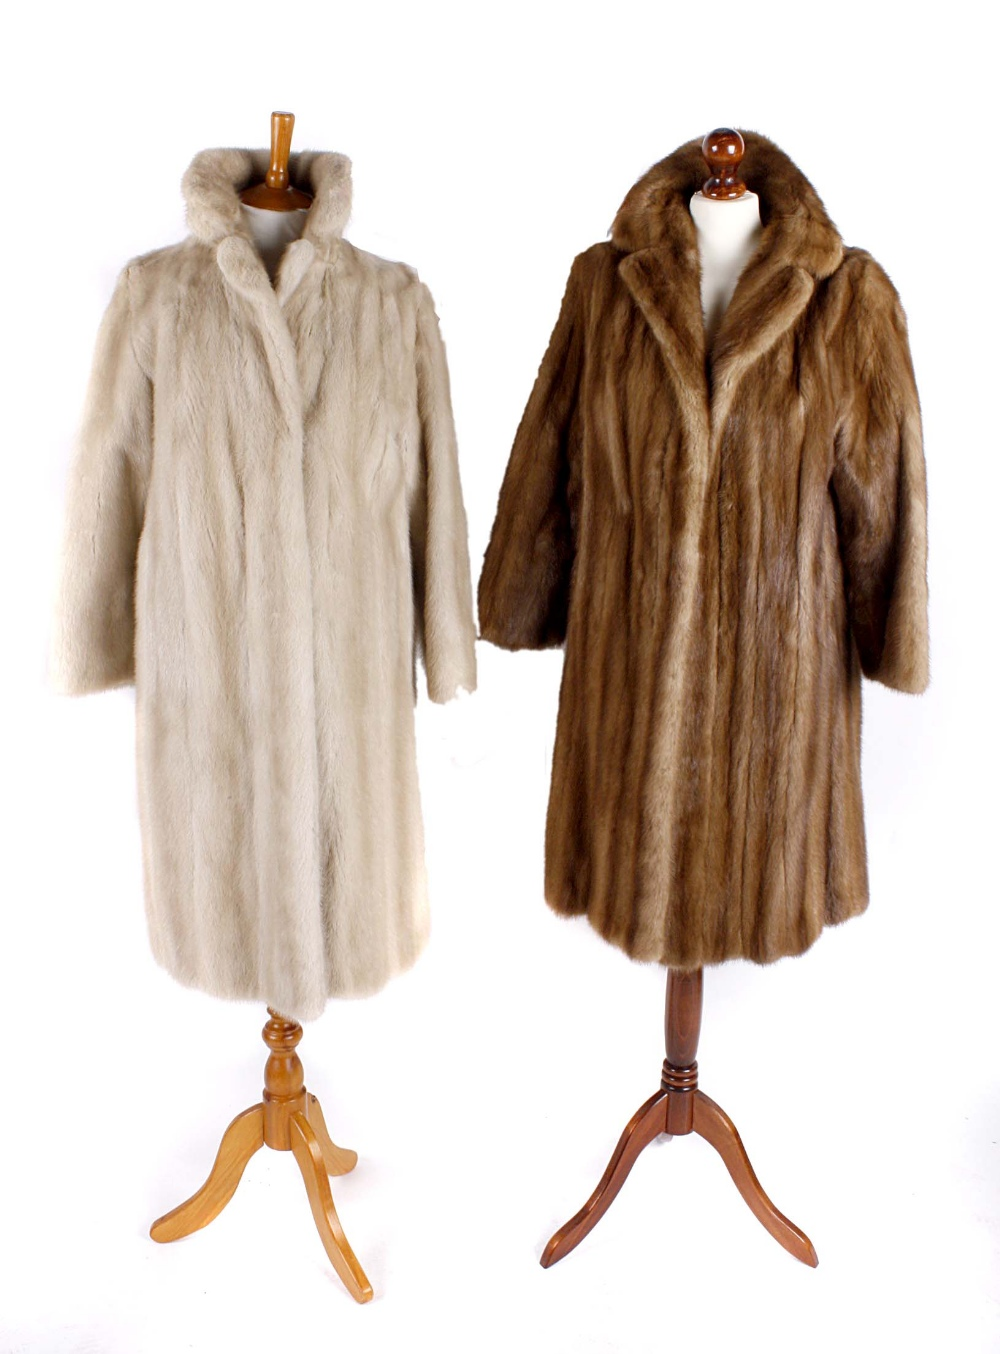 A 1960s champagne mink coat together with a Rackhams of